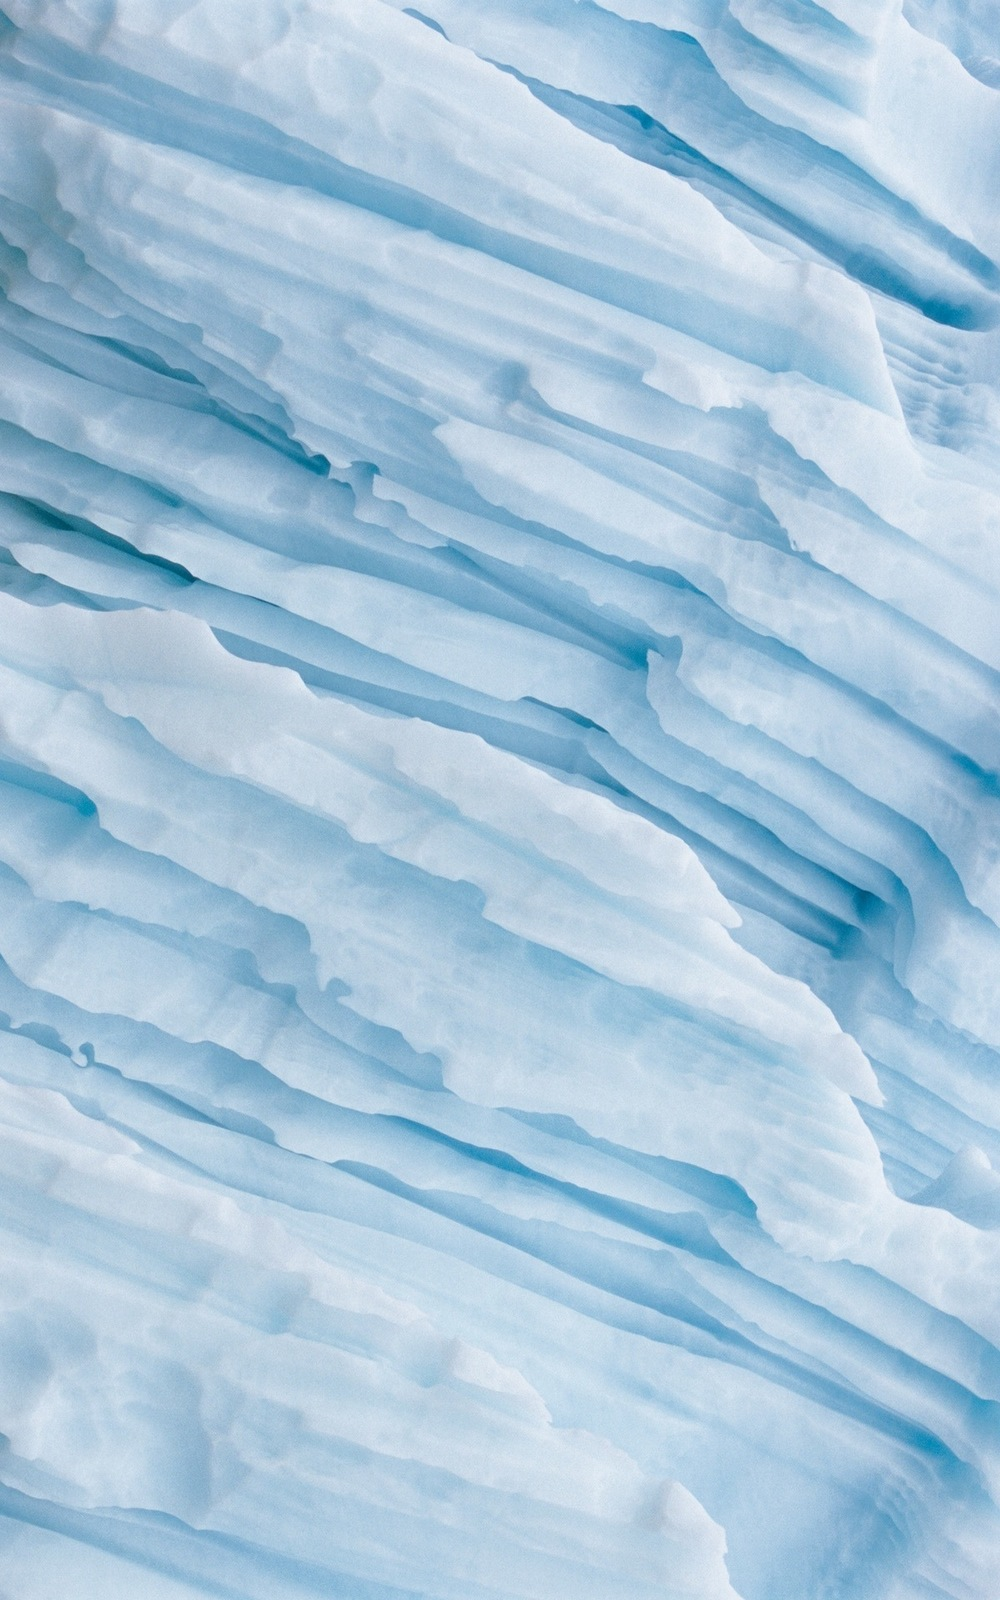 Natural-Fold-Frozen-Iceberg-iPhone-Wallpaper.jpg